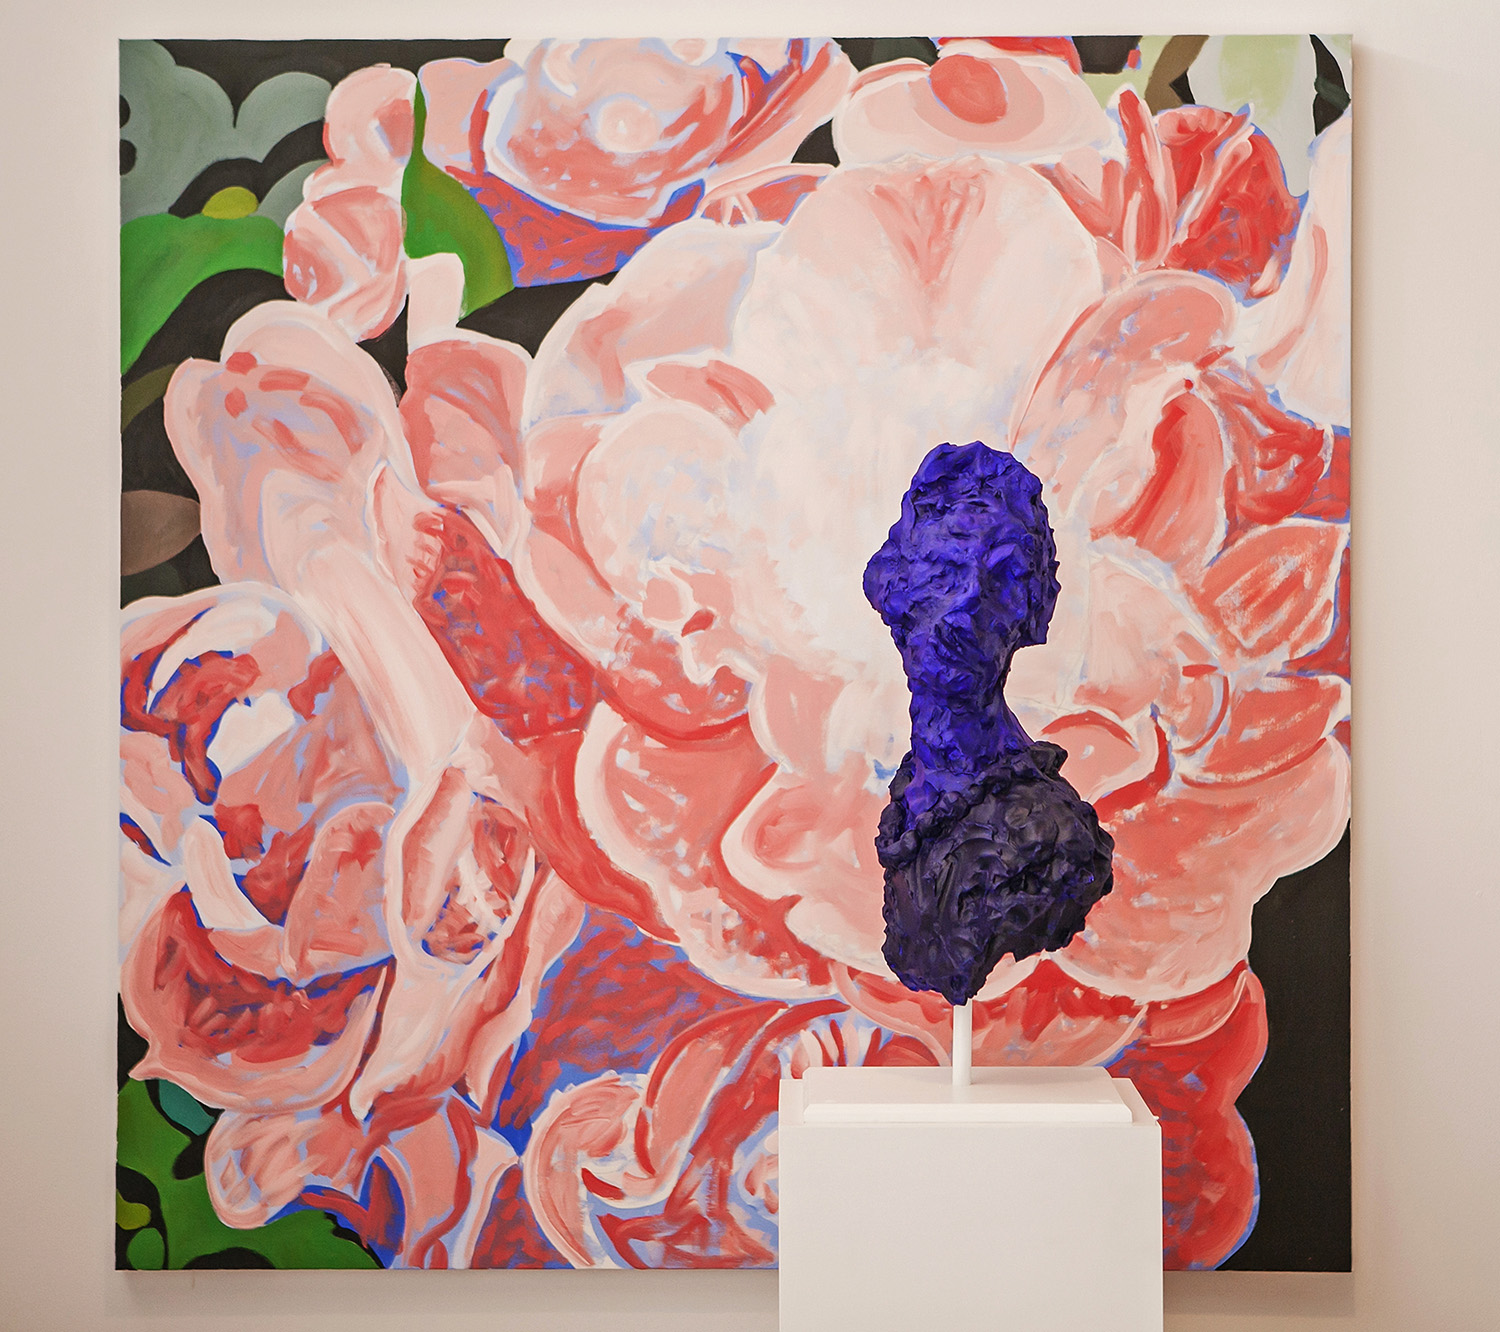 """Duchess in the Rose Garden , 2016, acrylic on plaster, 88""""H x 60""""W x 38""""D  Photo credit Amanda Tipton         0   0   1   15   86   RMCAD   1   1   100   14.0                      Normal   0           false   false   false     EN-US   JA   X-NONE                                                                                                                                                                                                                                                                                                                                                                              /* Style Definitions */ table.MsoNormalTable {mso-style-name:""""Table Normal""""; mso-tstyle-rowband-size:0; mso-tstyle-colband-size:0; mso-style-noshow:yes; mso-style-priority:99; mso-style-parent:""""""""; mso-padding-alt:0in 5.4pt 0in 5.4pt; mso-para-margin:0in; mso-para-margin-bottom:.0001pt; mso-pagination:widow-orphan; font-size:10.0pt; font-family:""""Times New Roman""""; mso-fareast-language:JA;}"""